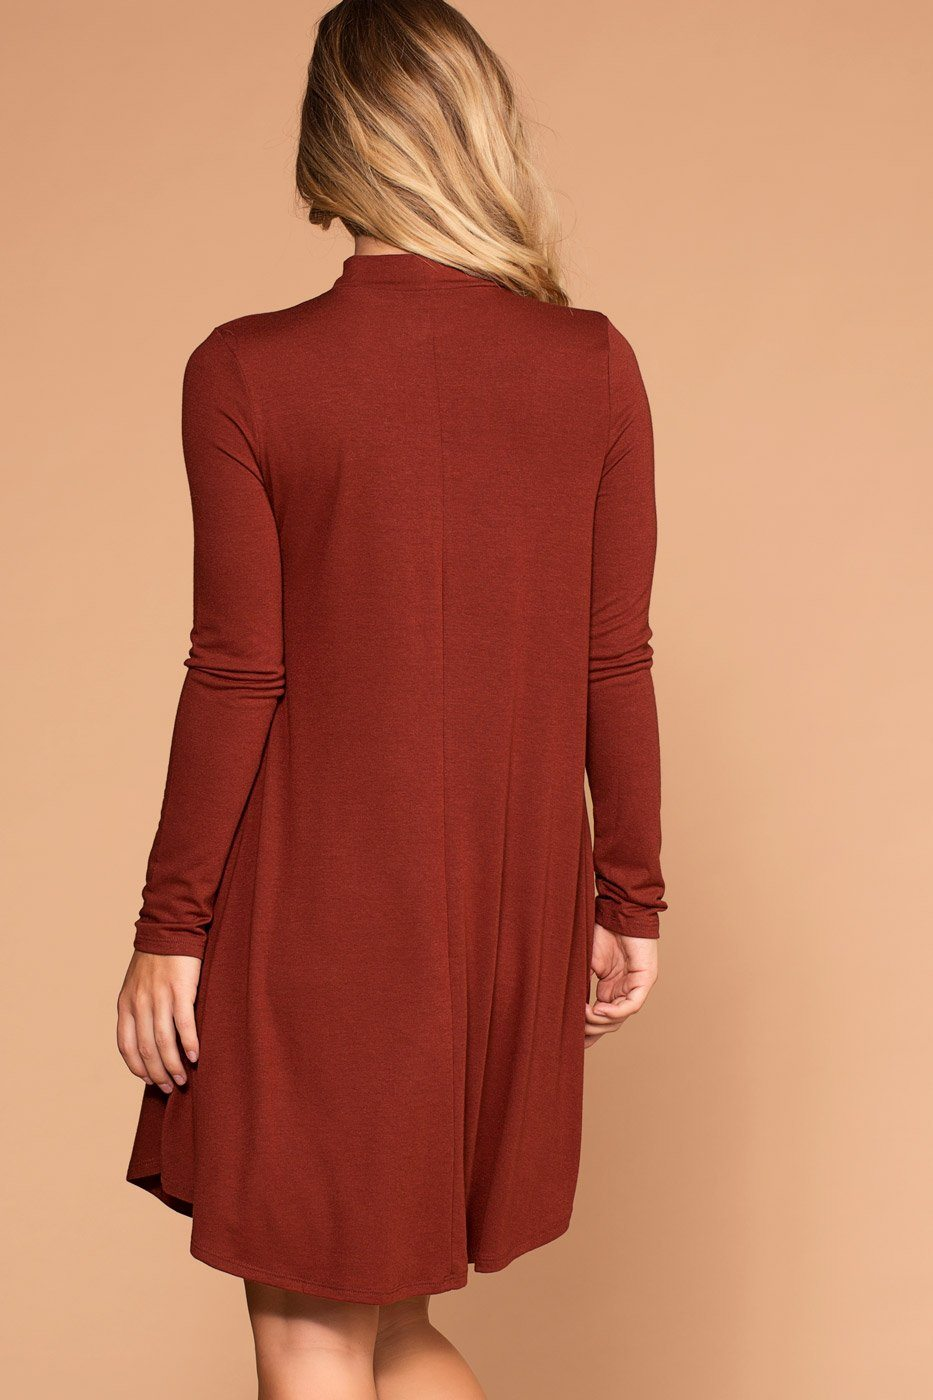 Randi Brick Swing Pocket Dress | Shop Priceless